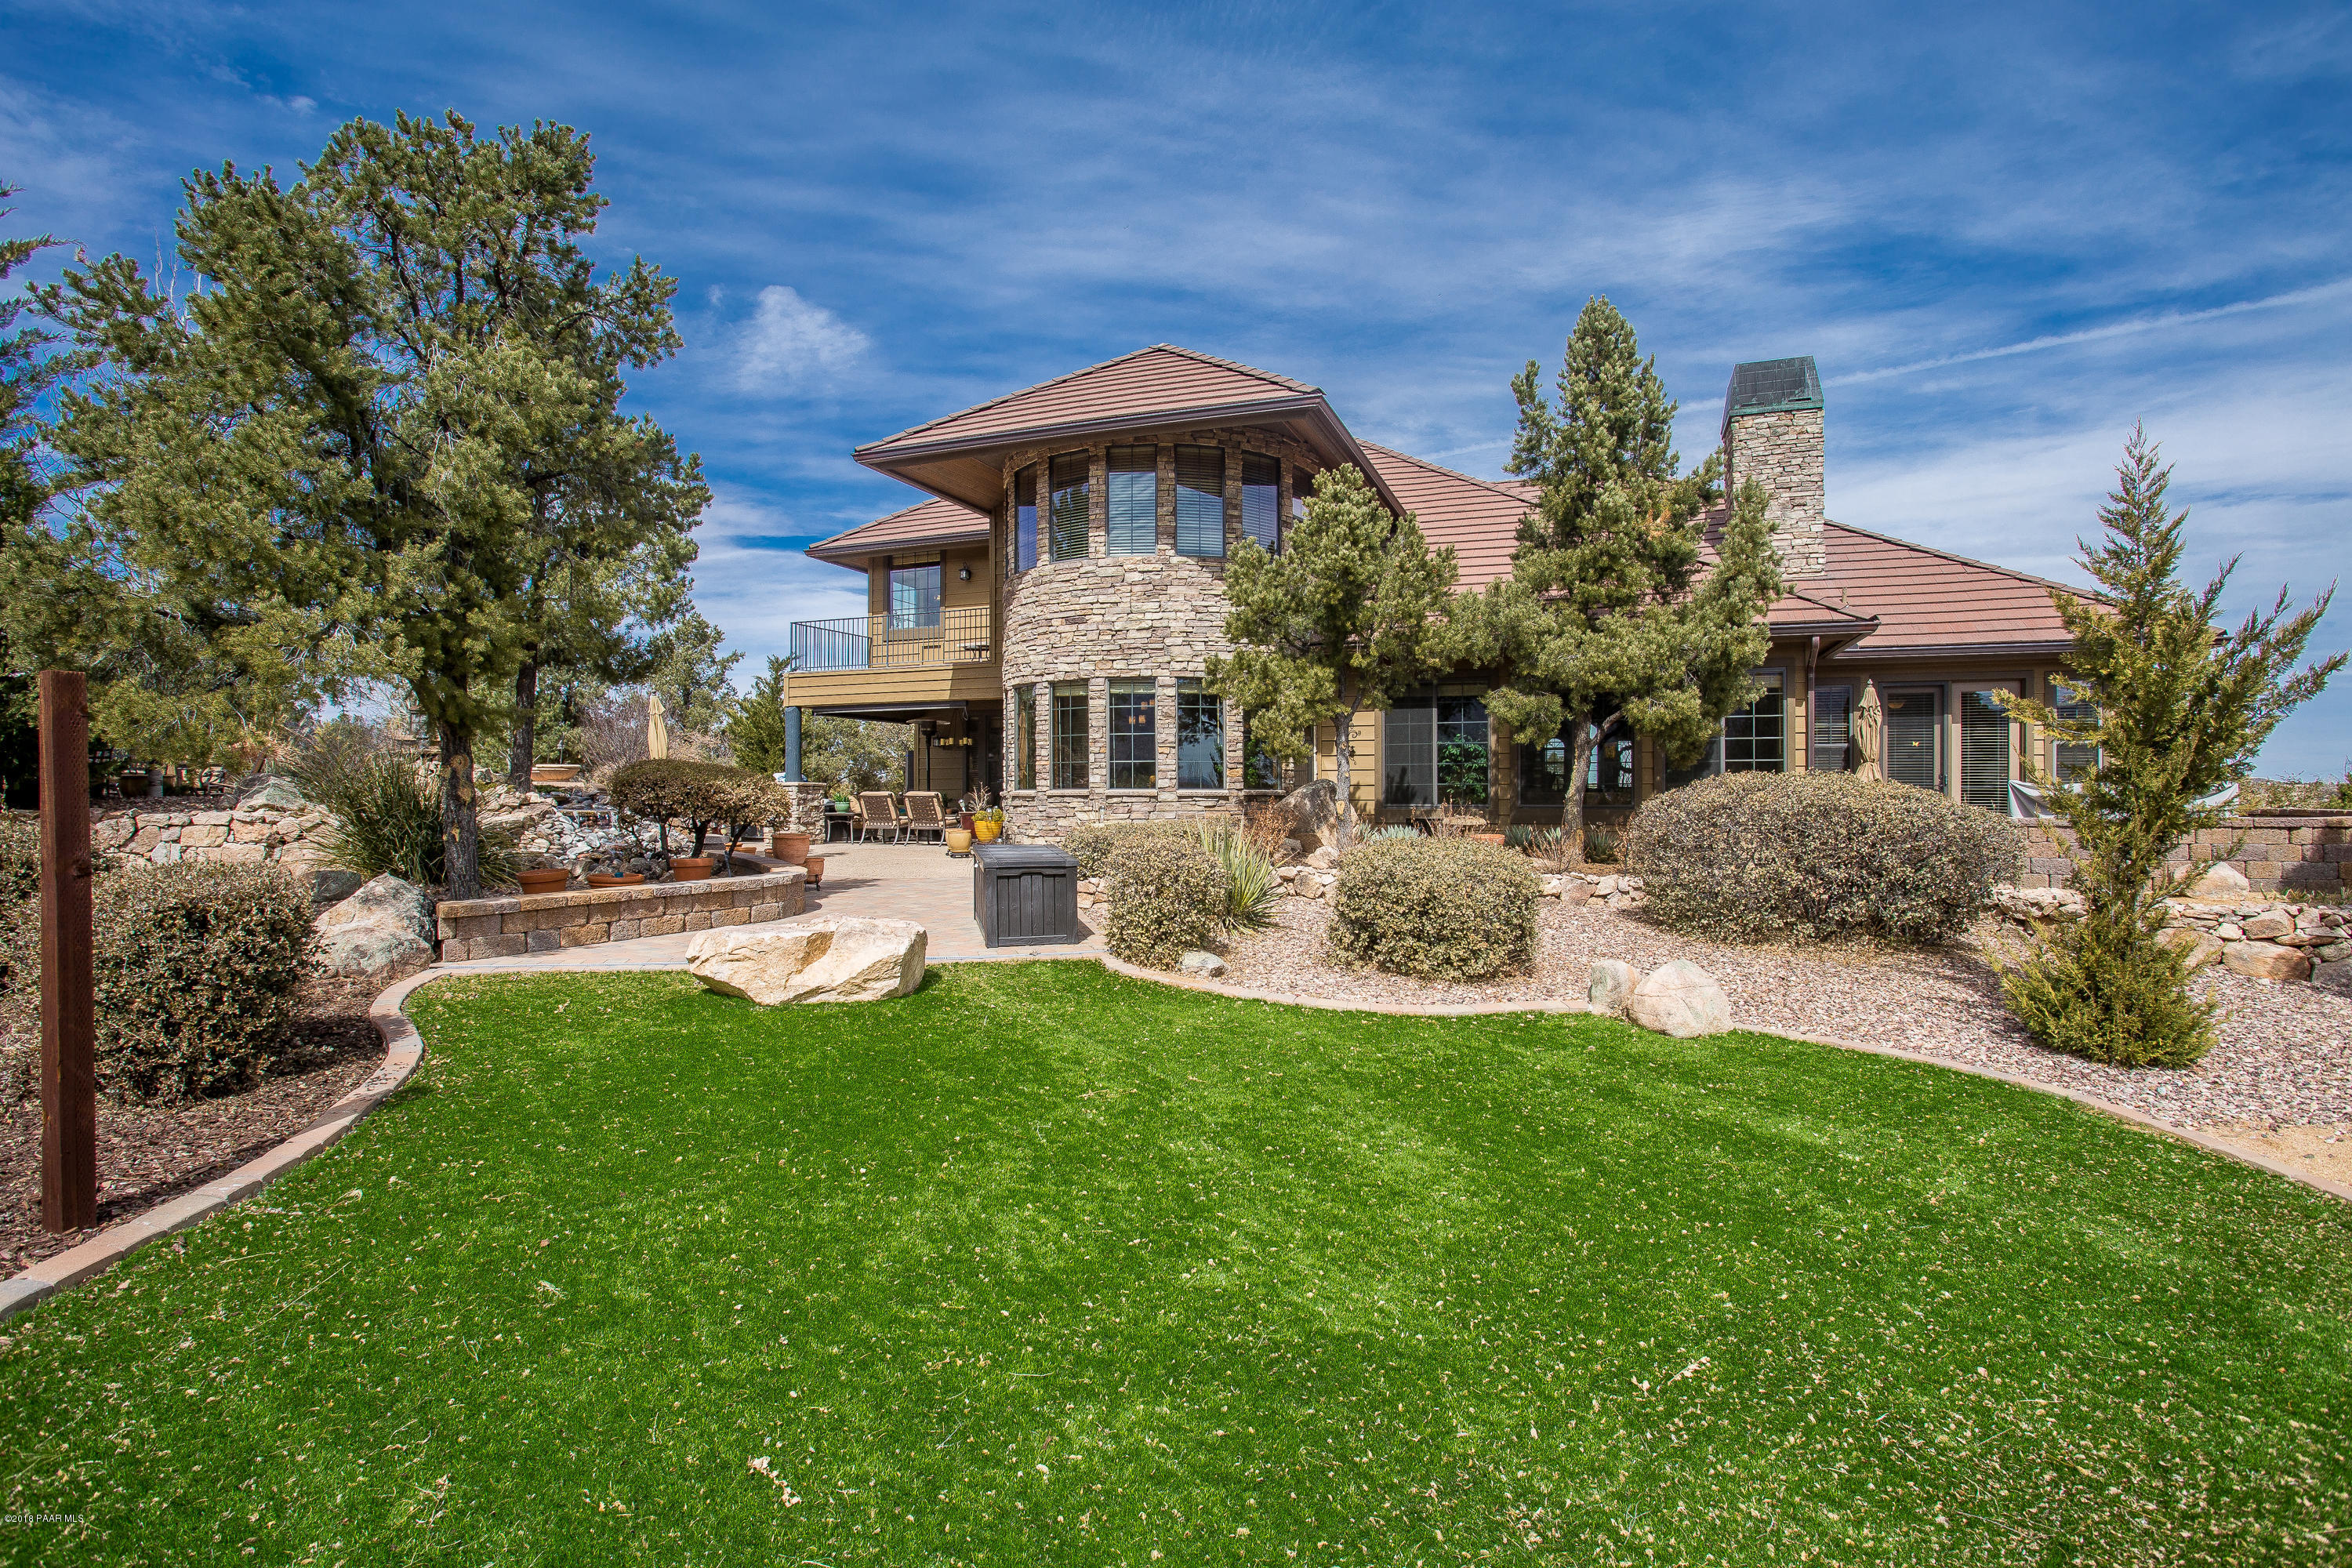 Photo of 4405 Clear Fork, Prescott, AZ 86305